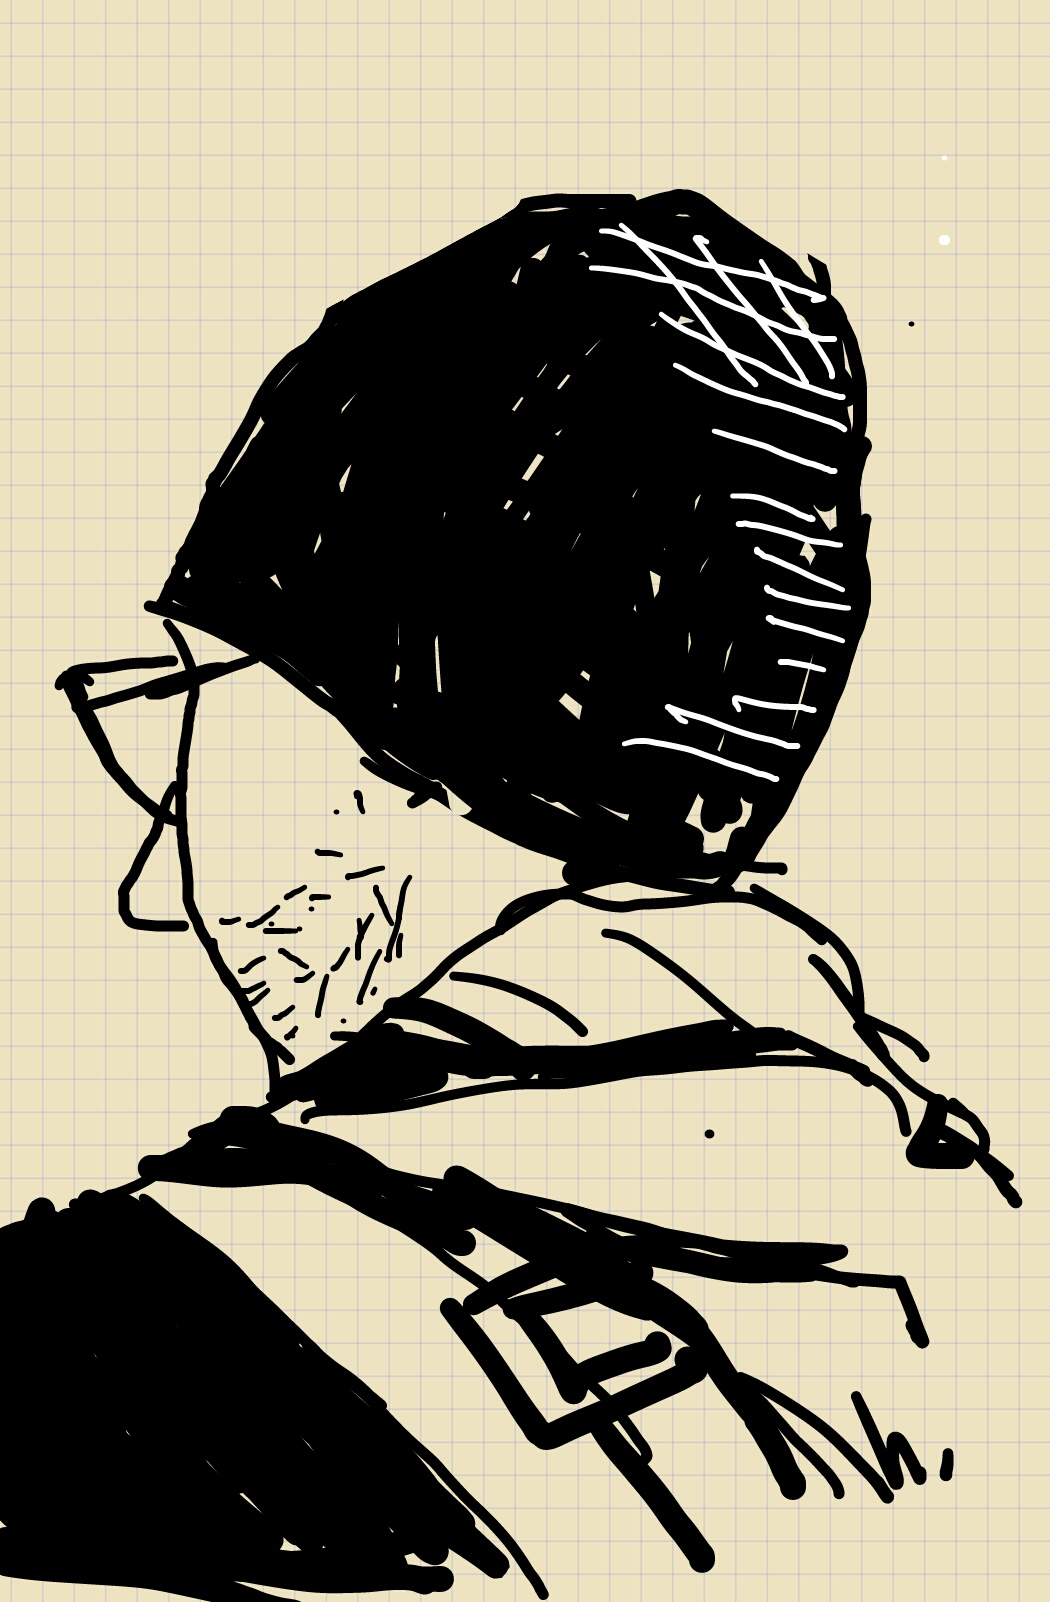 A man in a beanie and glasses, sketched from behind.